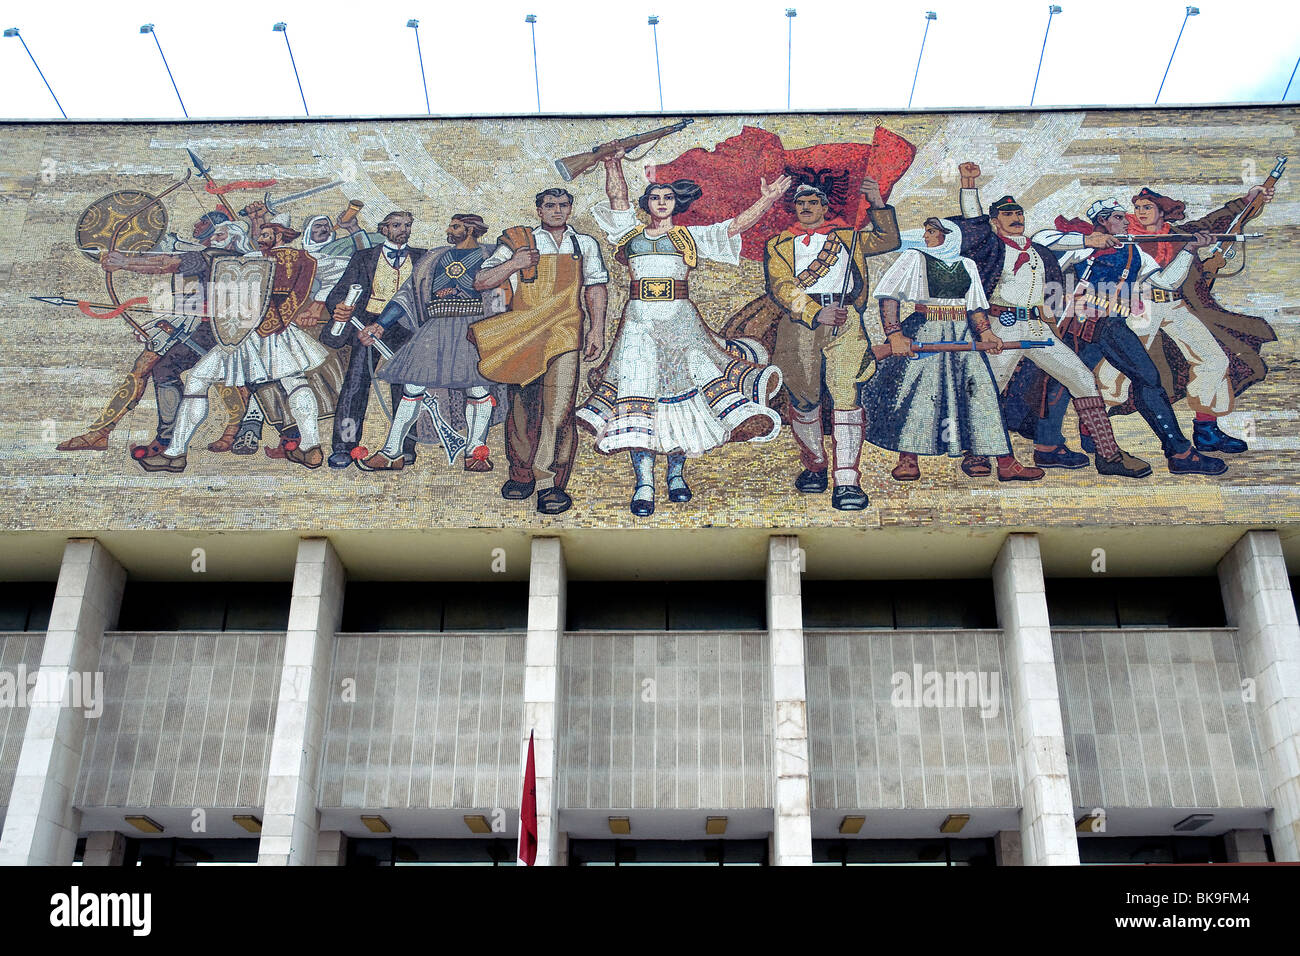 Socialist-realist style mosaic fascia of Albania's National Historical Museum in Skanderbeg Square Tirana - Stock Image